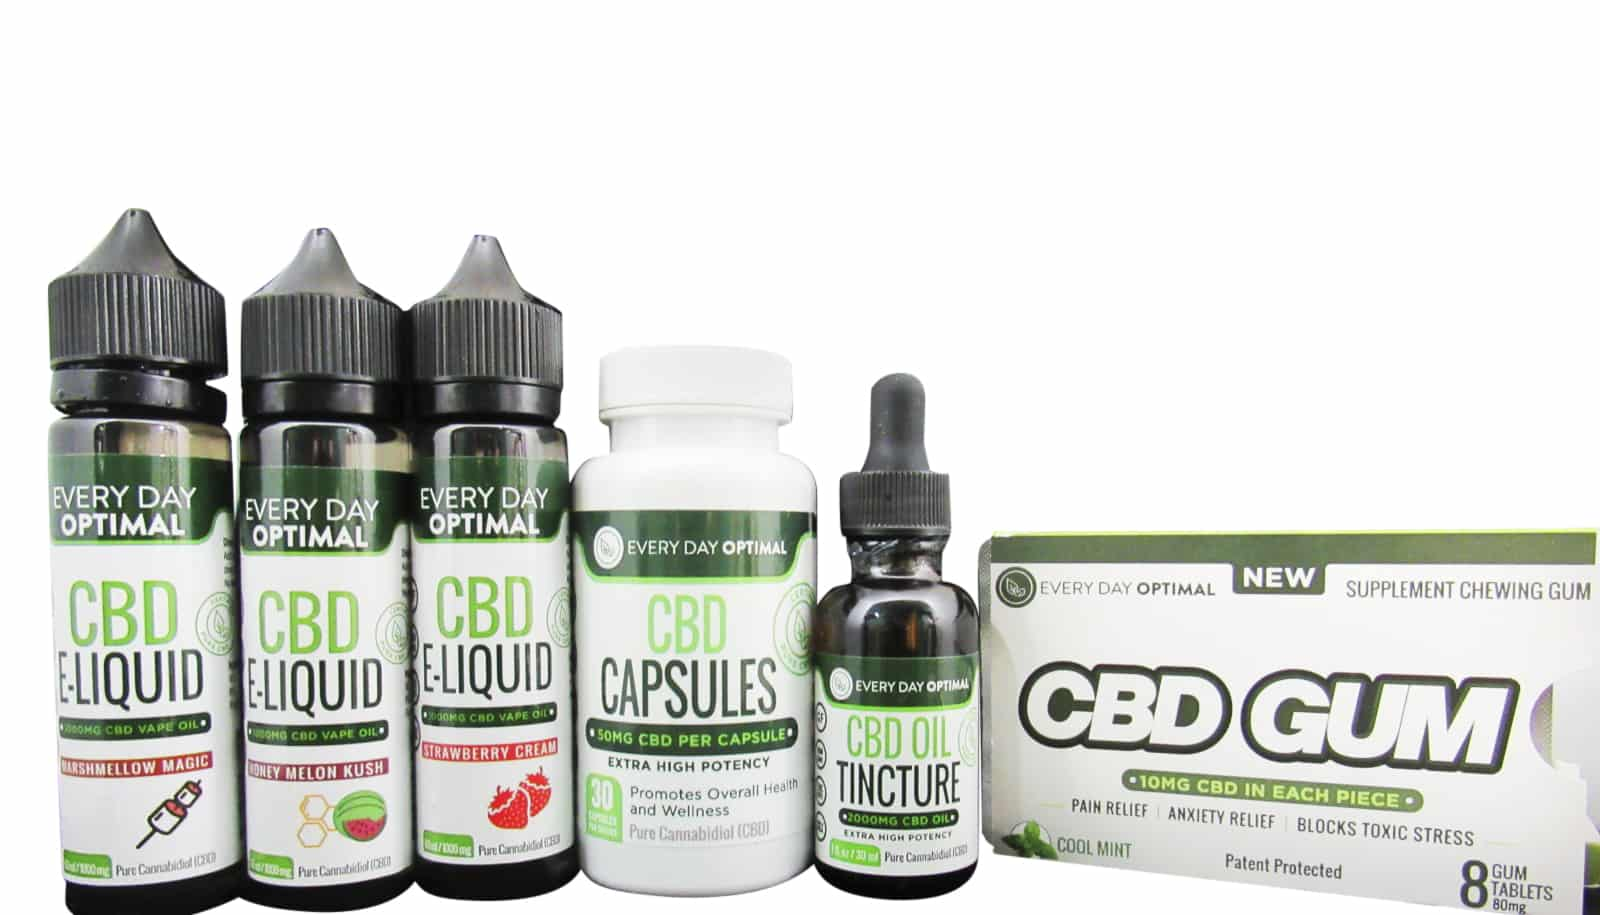 Every Day Optimal CBD Review: Should You Buy? ? - Vapor Vanity